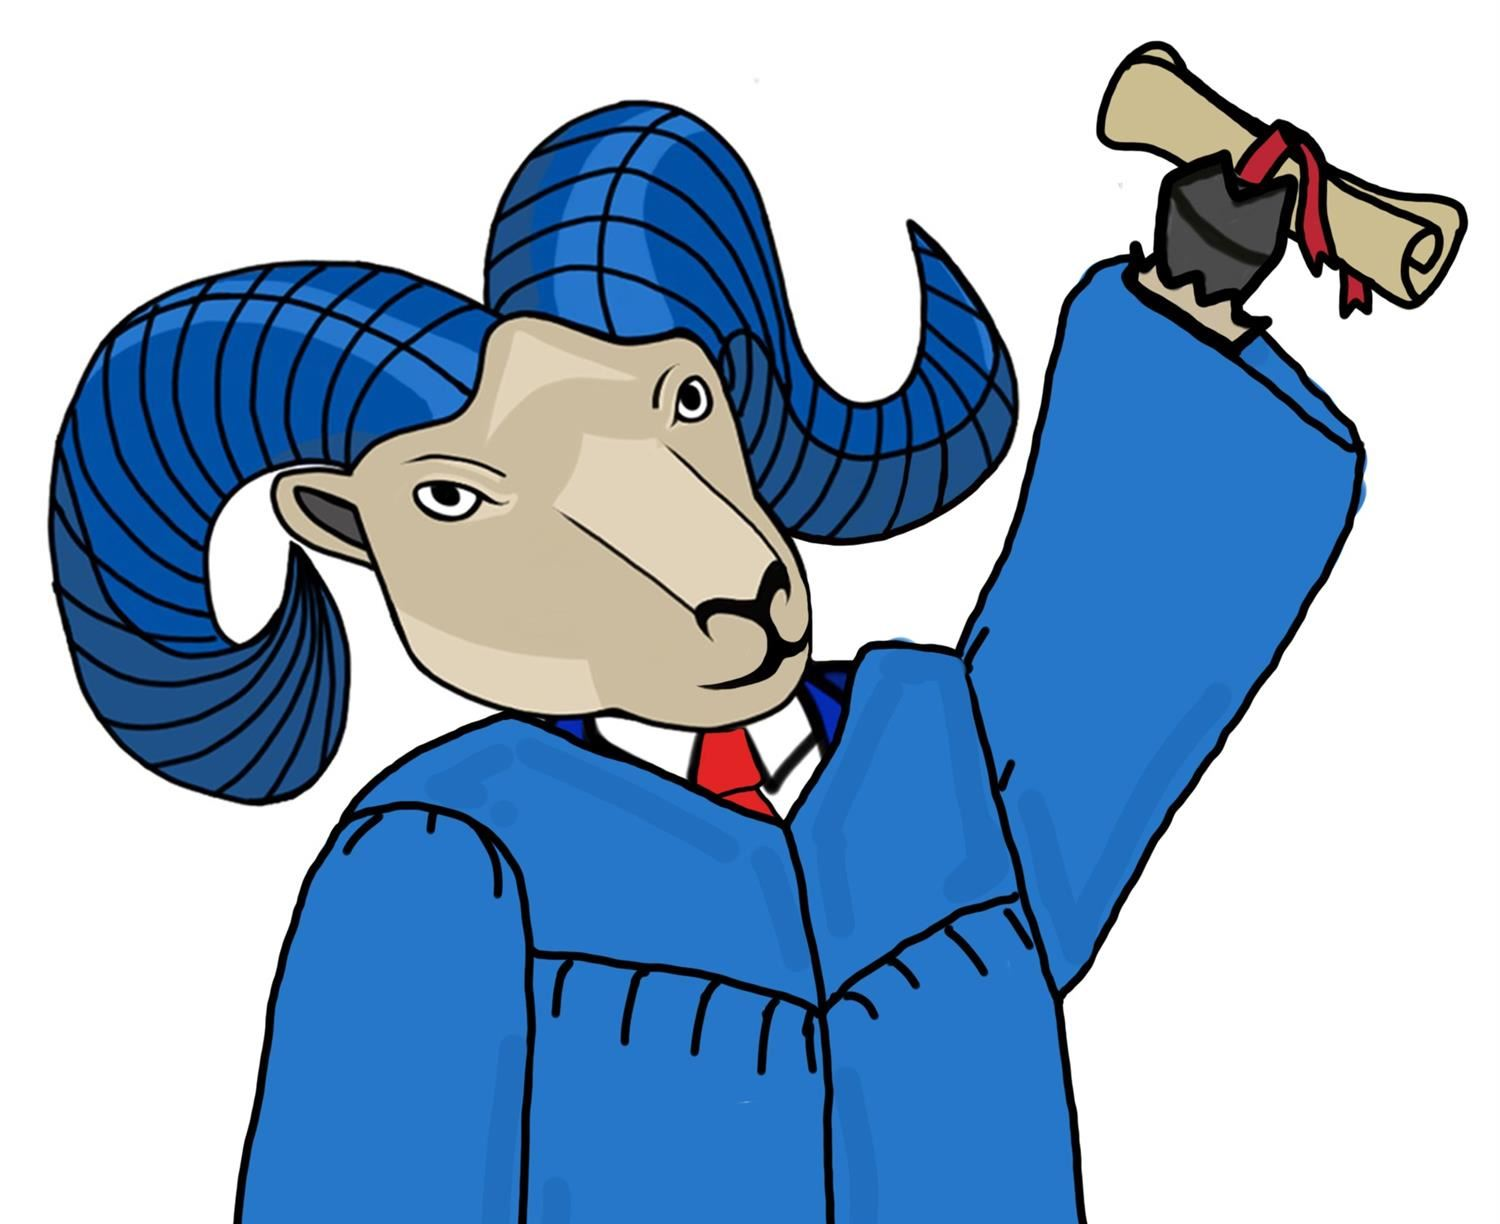 Ram holding up a diploma in blue cap and gown